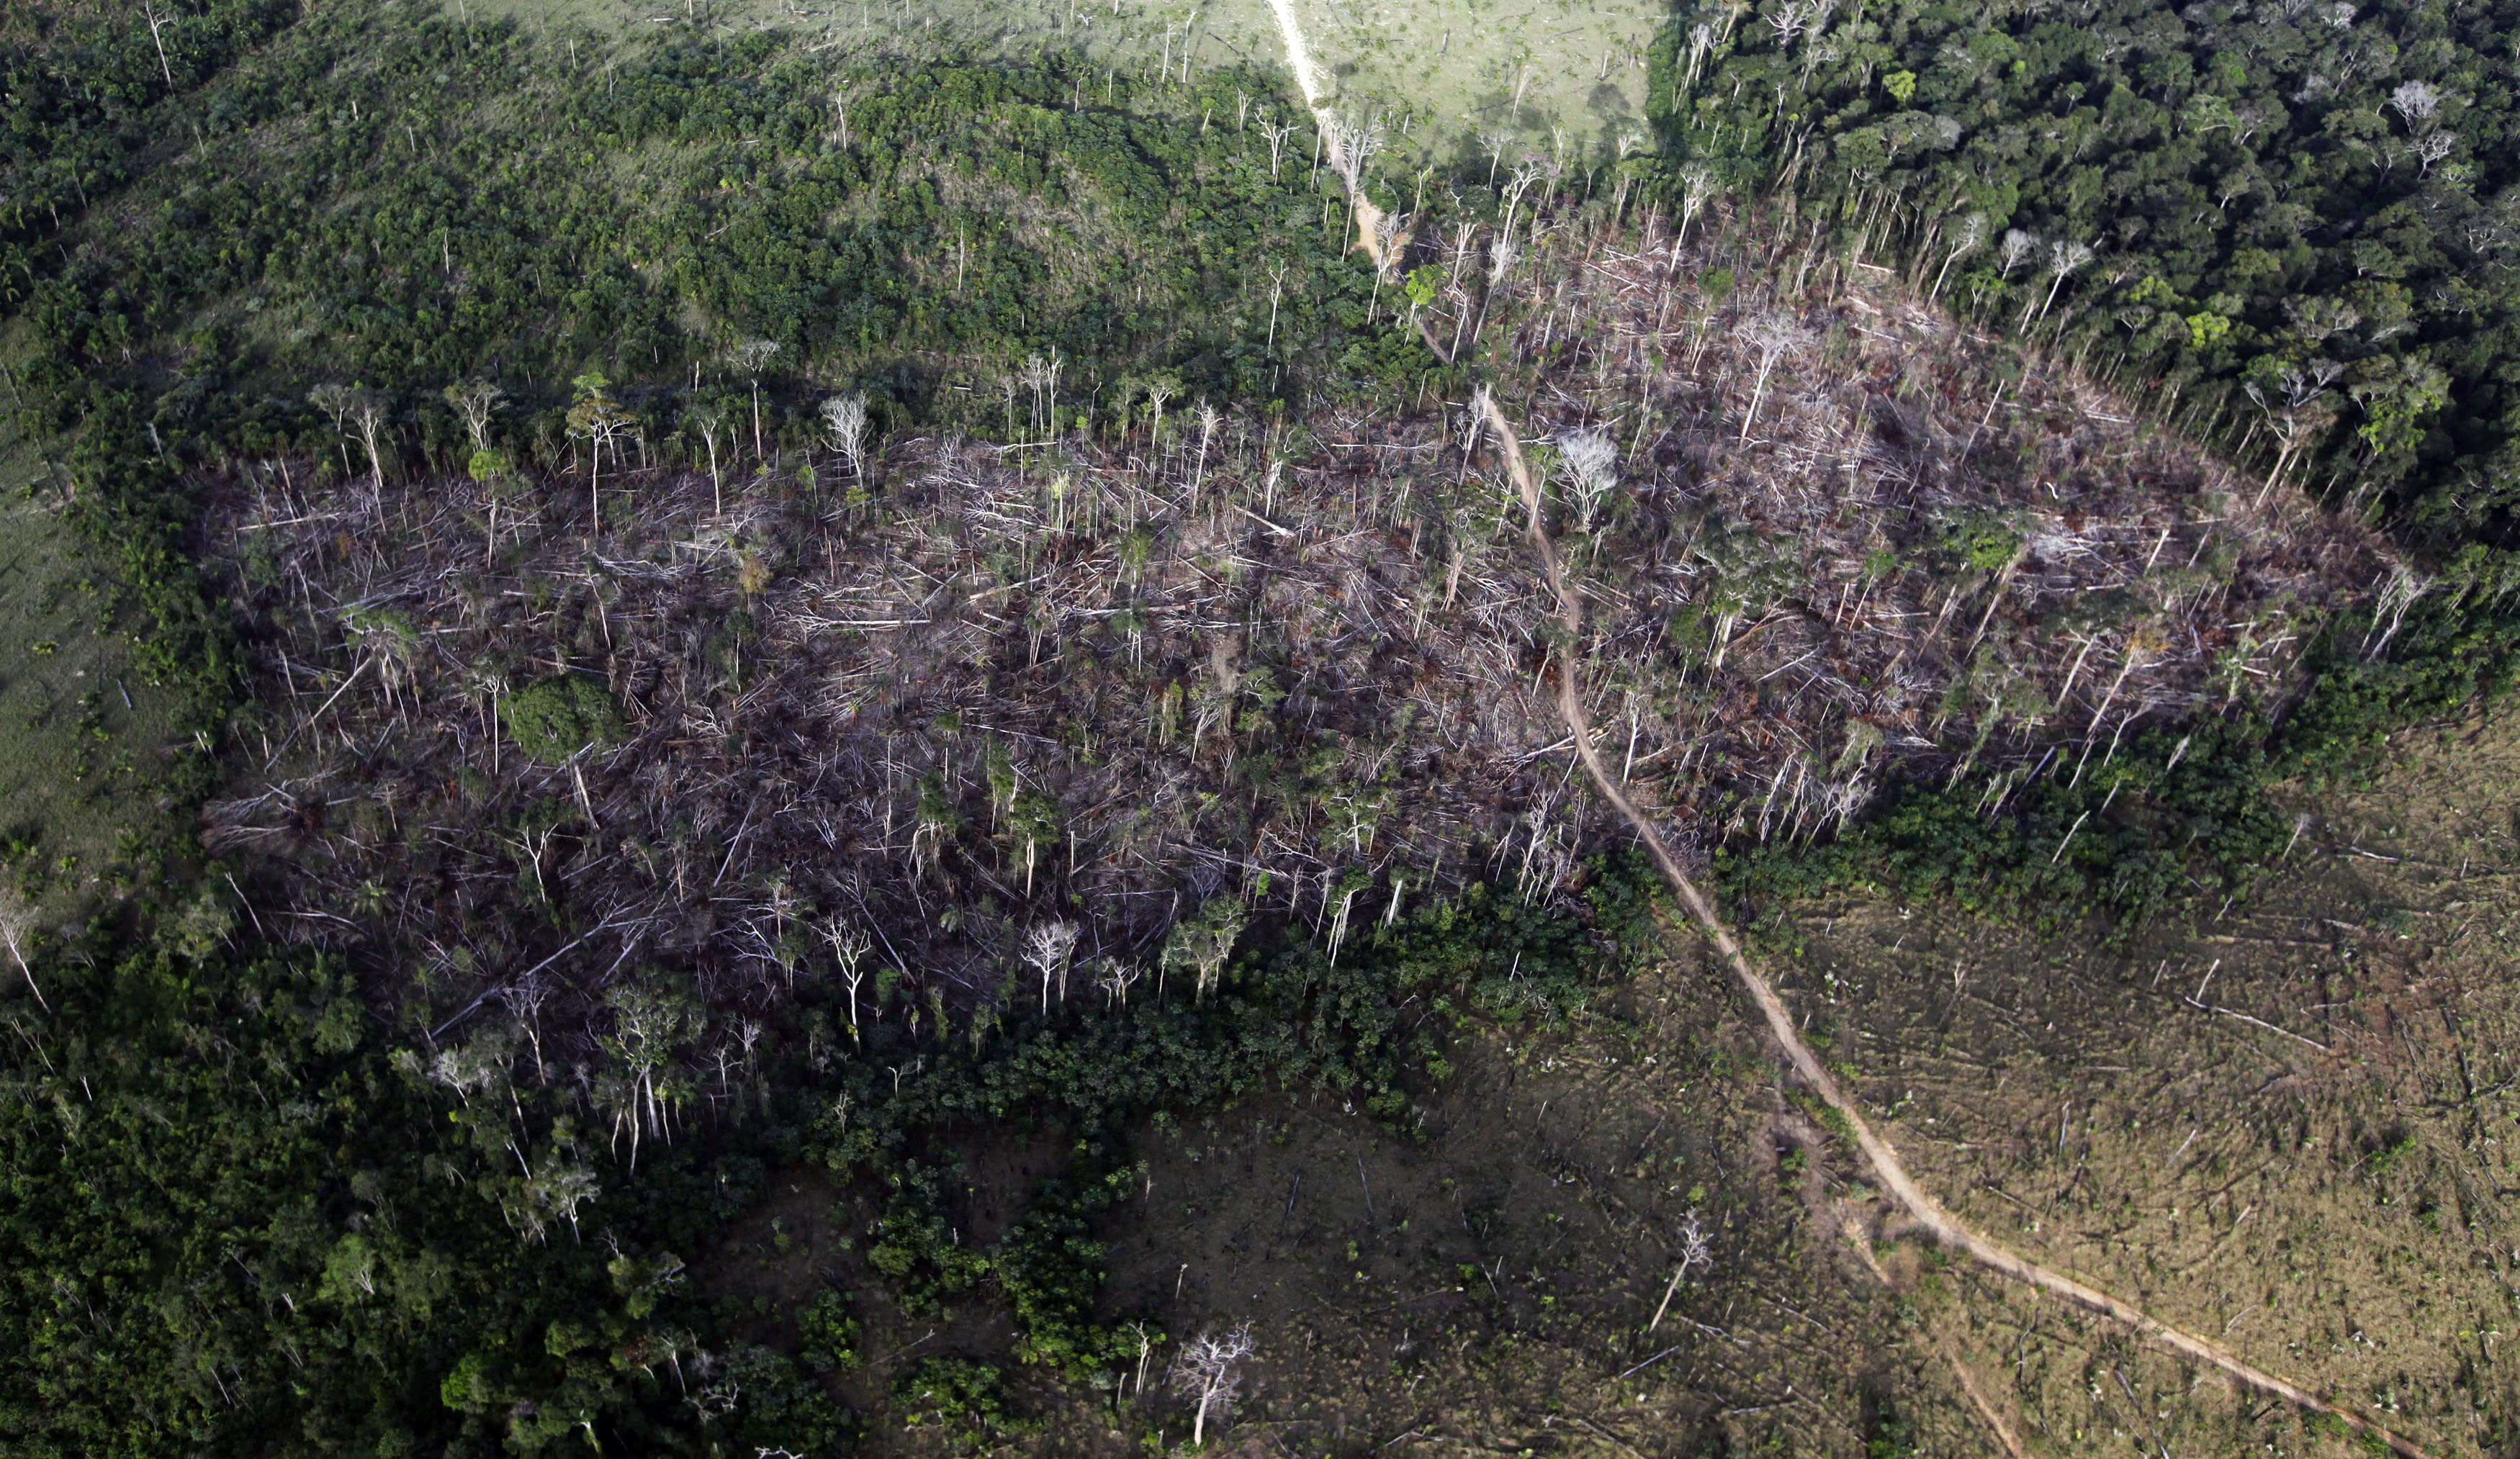 An aerial view shows illegal deforestation close to the Amazonia National Park in Itaituba, state of Para May 25, 2012. In the 19 months since Brazil's President Dilma Rousseff took office, longstanding rules that curtail deforestation and protect millions of square kilometers of watershed have been rolled back. She issued an executive order to shrink or repurpose seven protected woodlands, making way for hydroelectric dams and other infrastructure projects, and to legalize settlements by farmers and miners. Picture taken May 25, 2012. To match Special Report BRAZIL-ENVIRONMENT/BACKSLIDE    REUTERS/Nacho Doce (BRAZIL - Tags: POLITICS ENVIRONMENT BUSINESS) - GM2E88317OM01